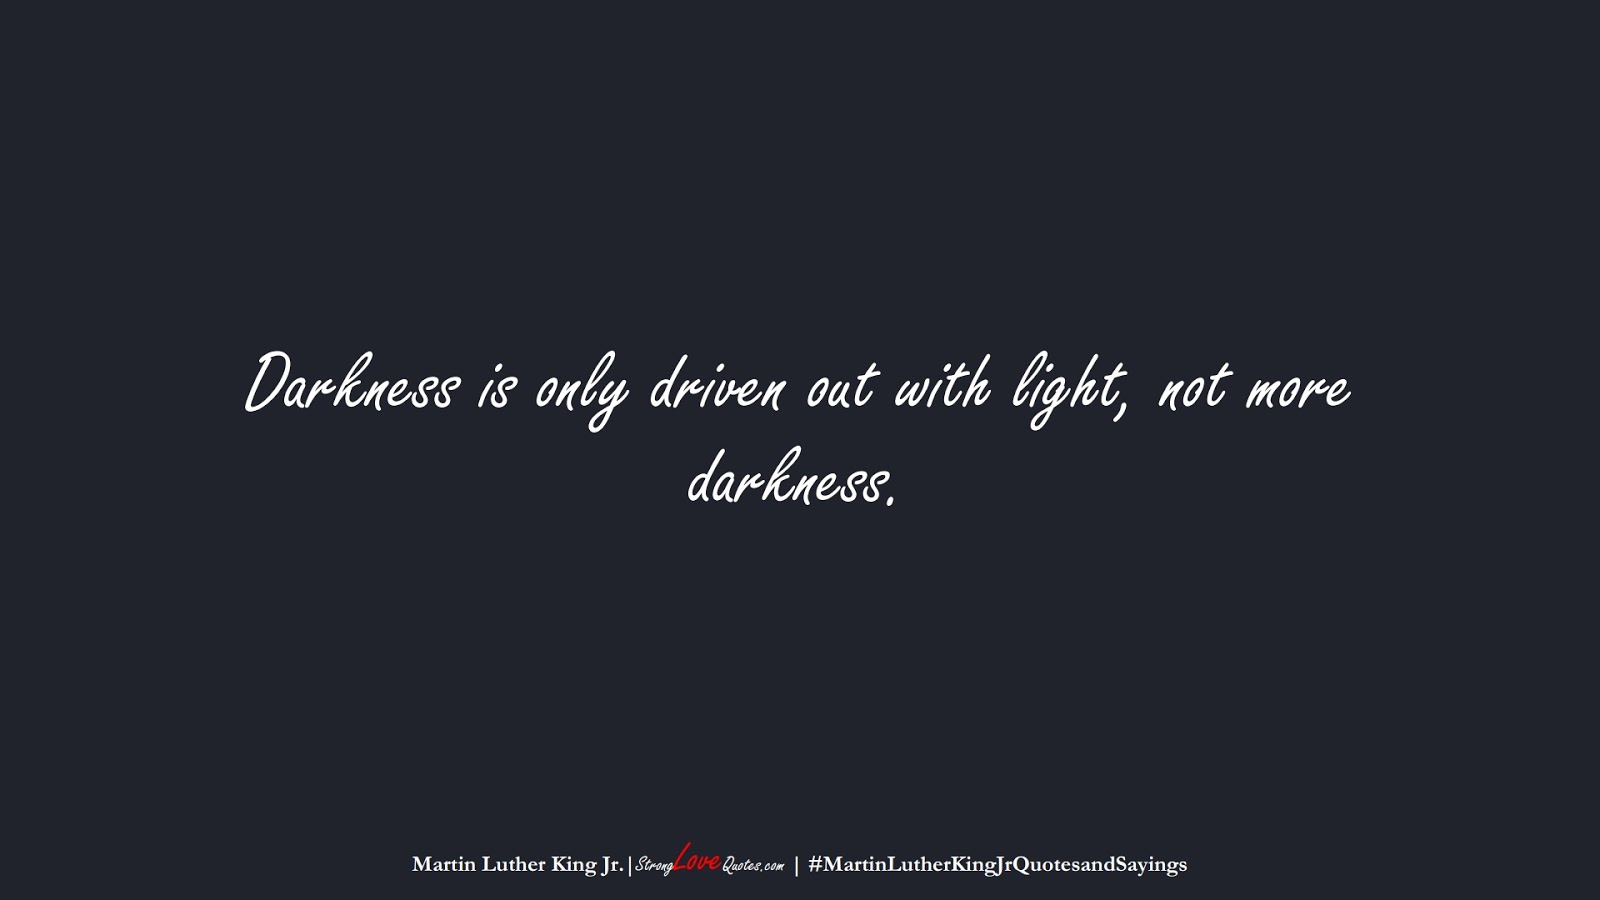 Darkness is only driven out with light, not more darkness. (Martin Luther King Jr.);  #MartinLutherKingJrQuotesandSayings